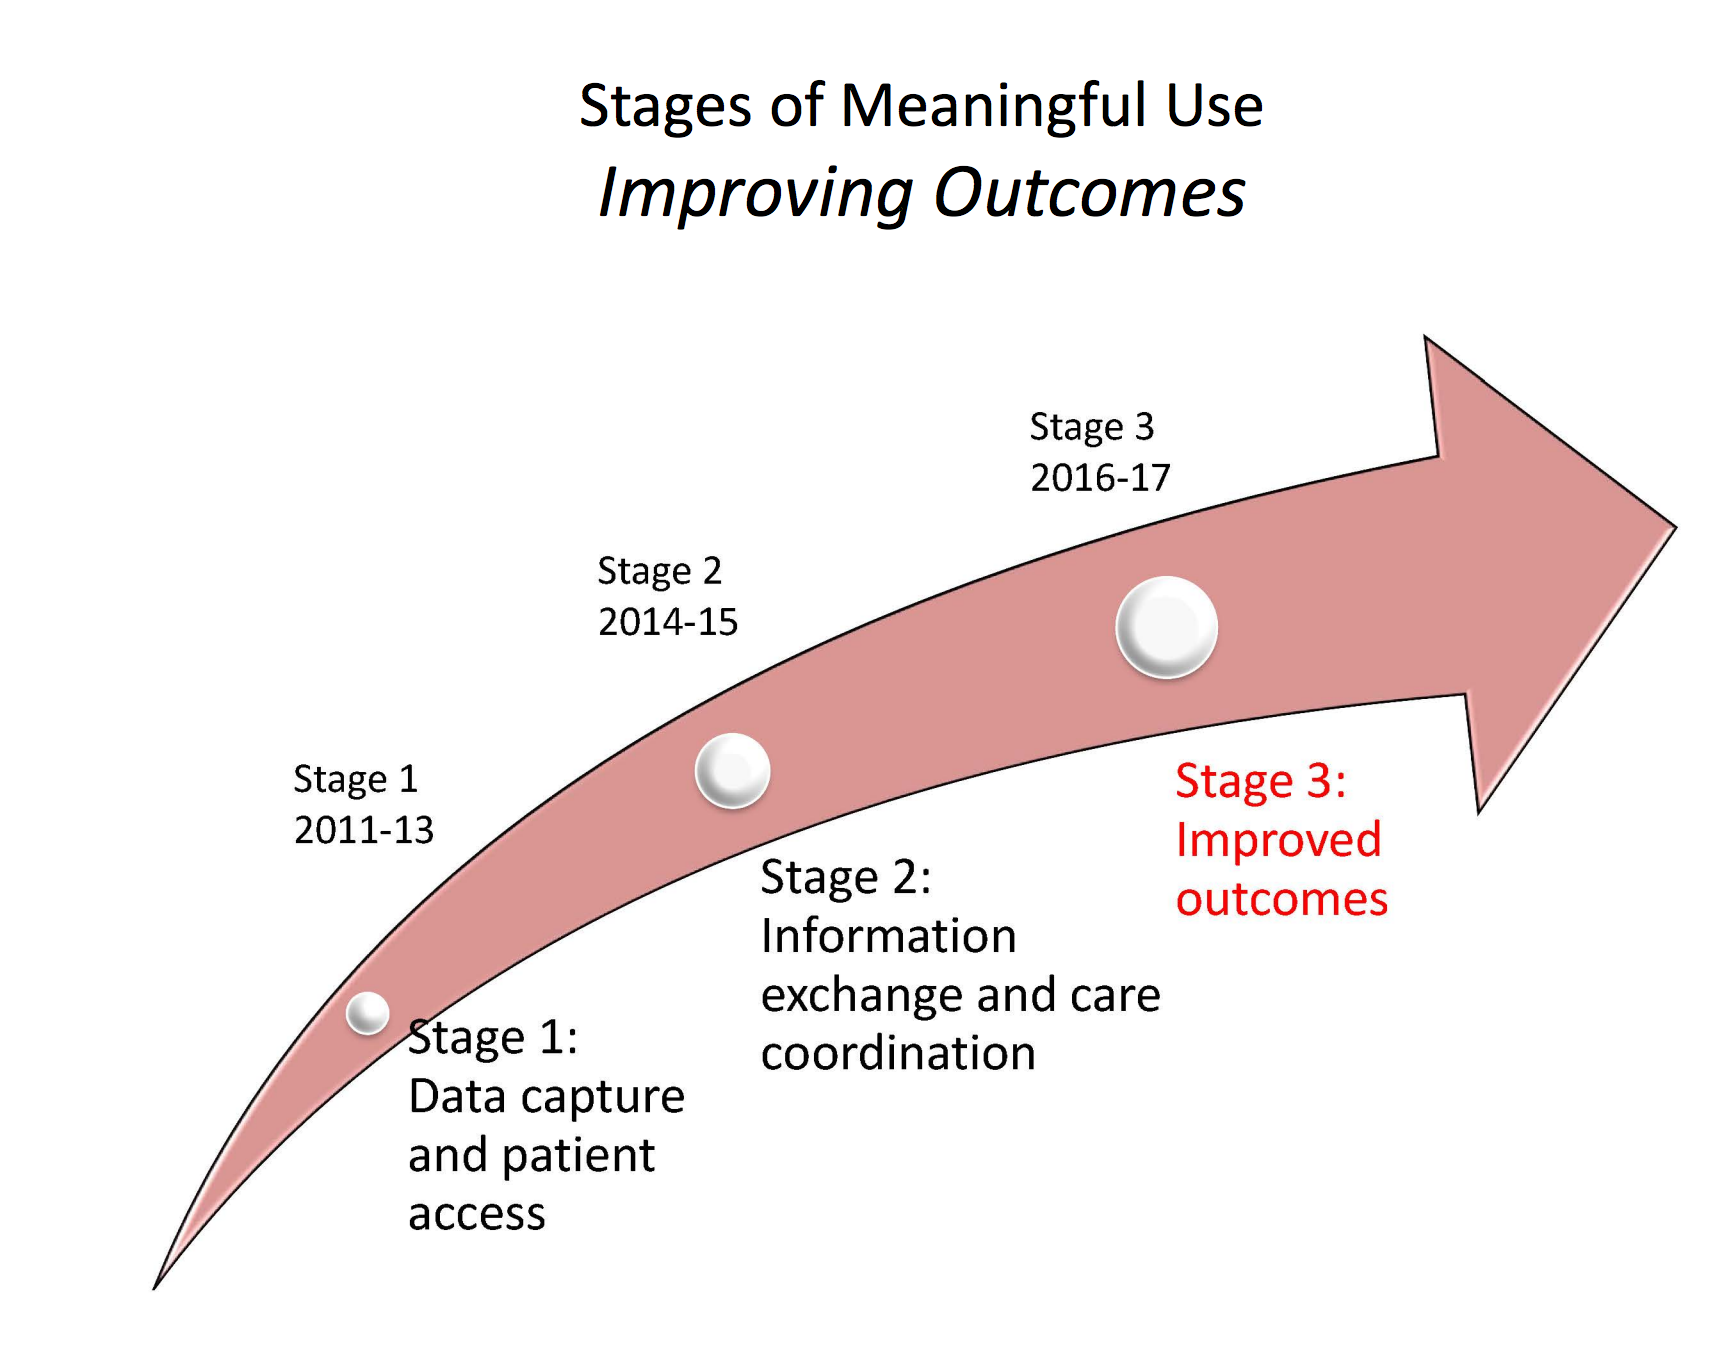 Meaningful use timeline